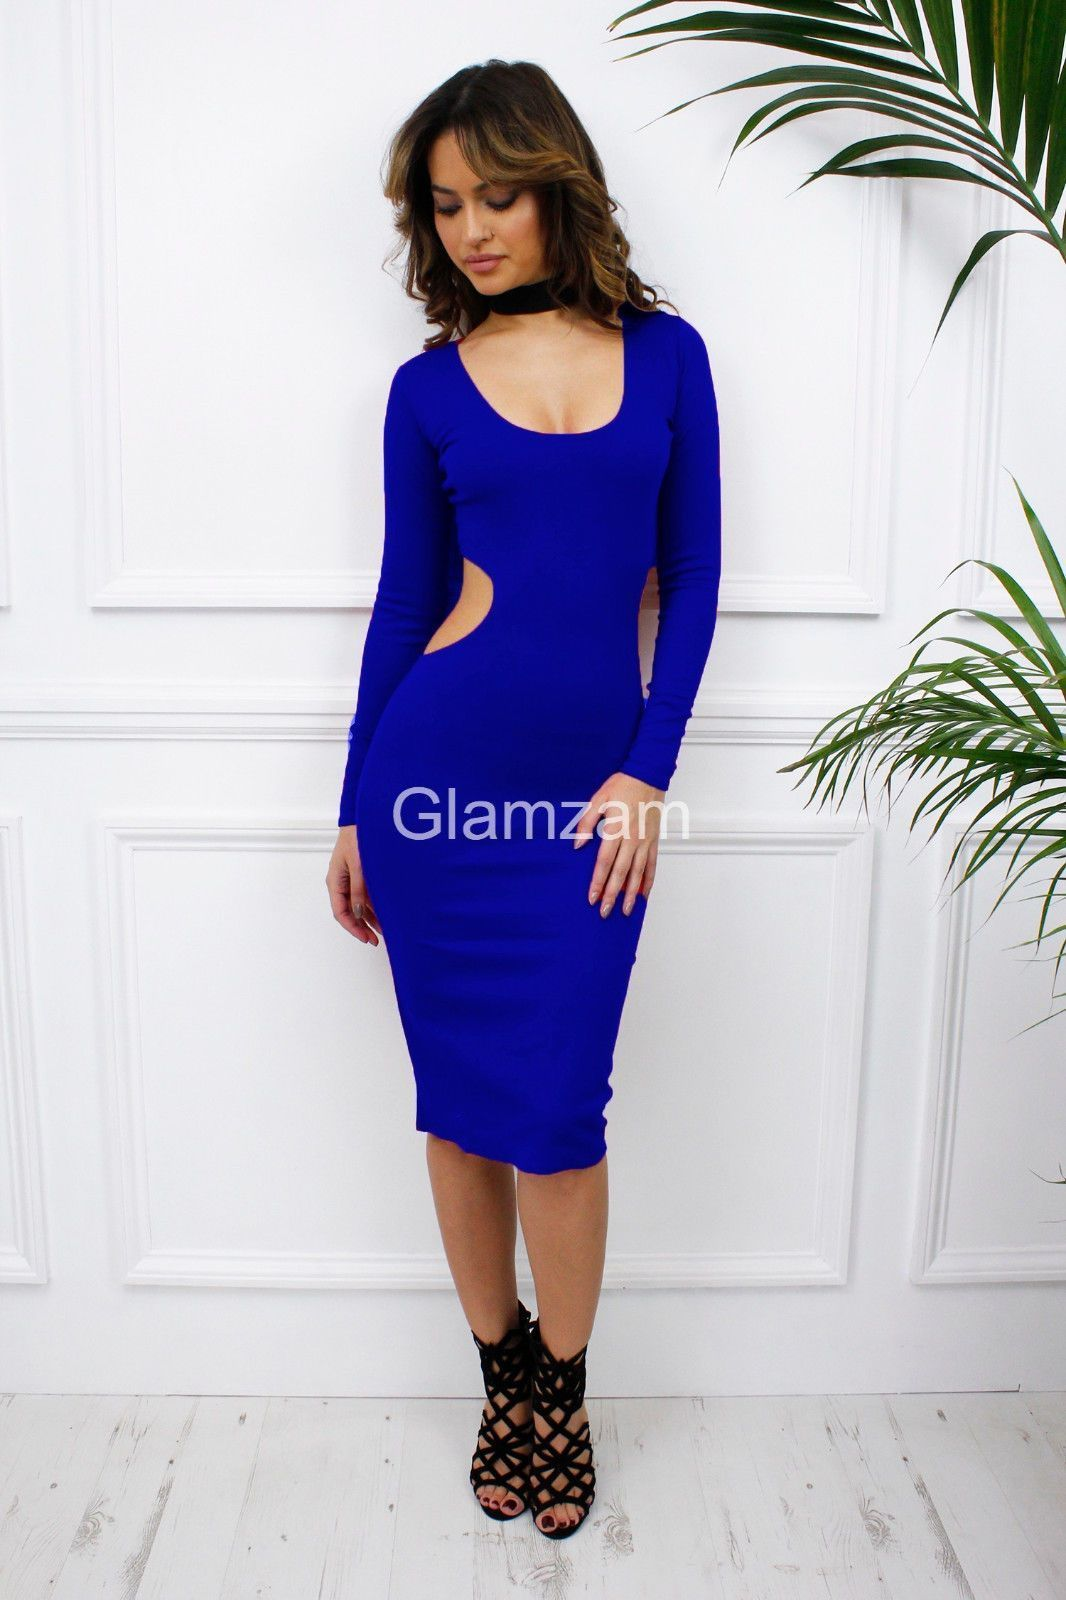 Glamzam womens ladies blue cut out backless long sleeve midi bodycon